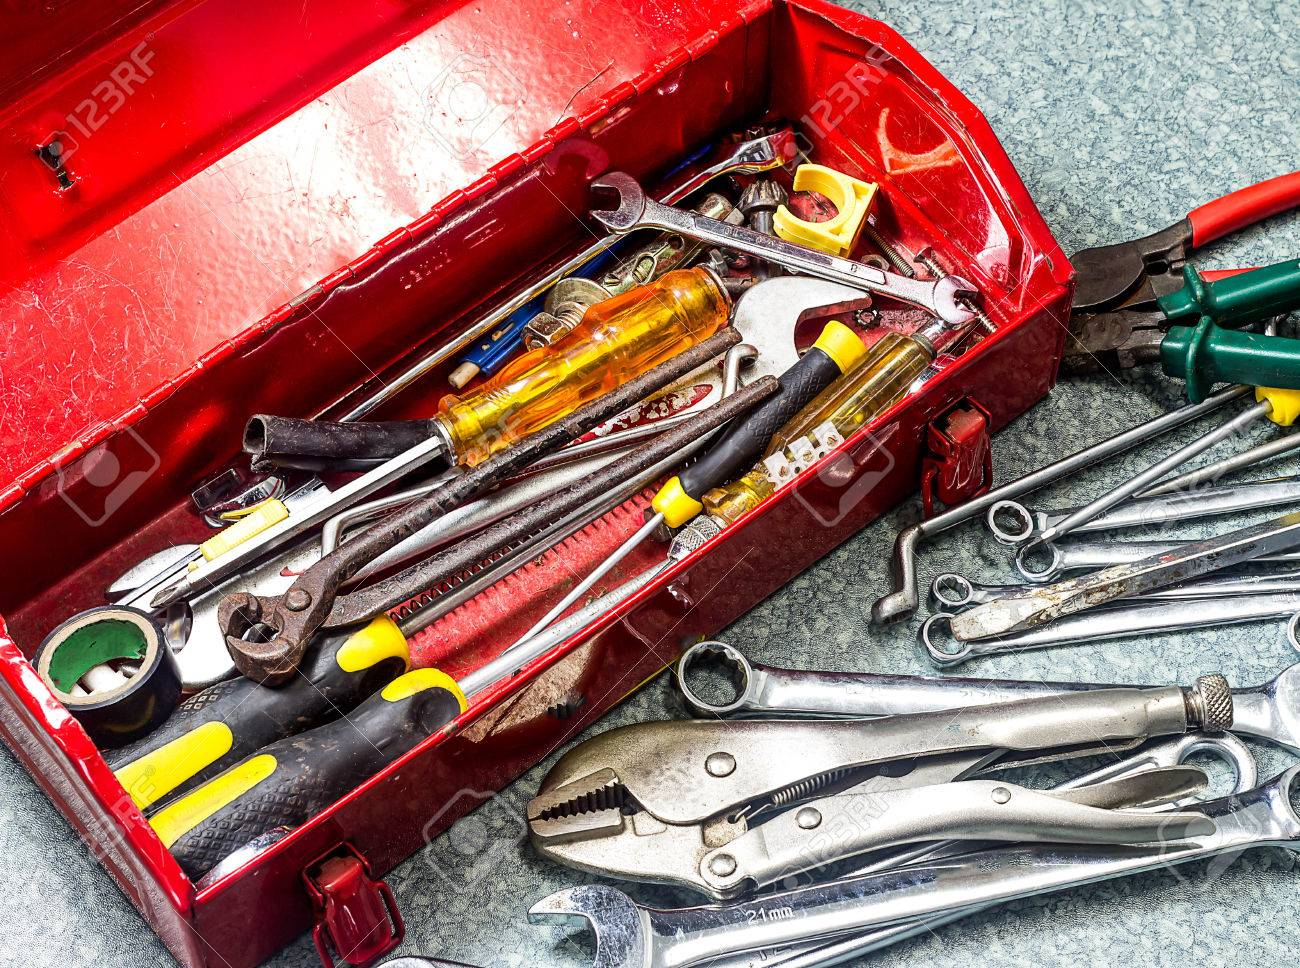 well used old tools and red tool box stock photo, picture and